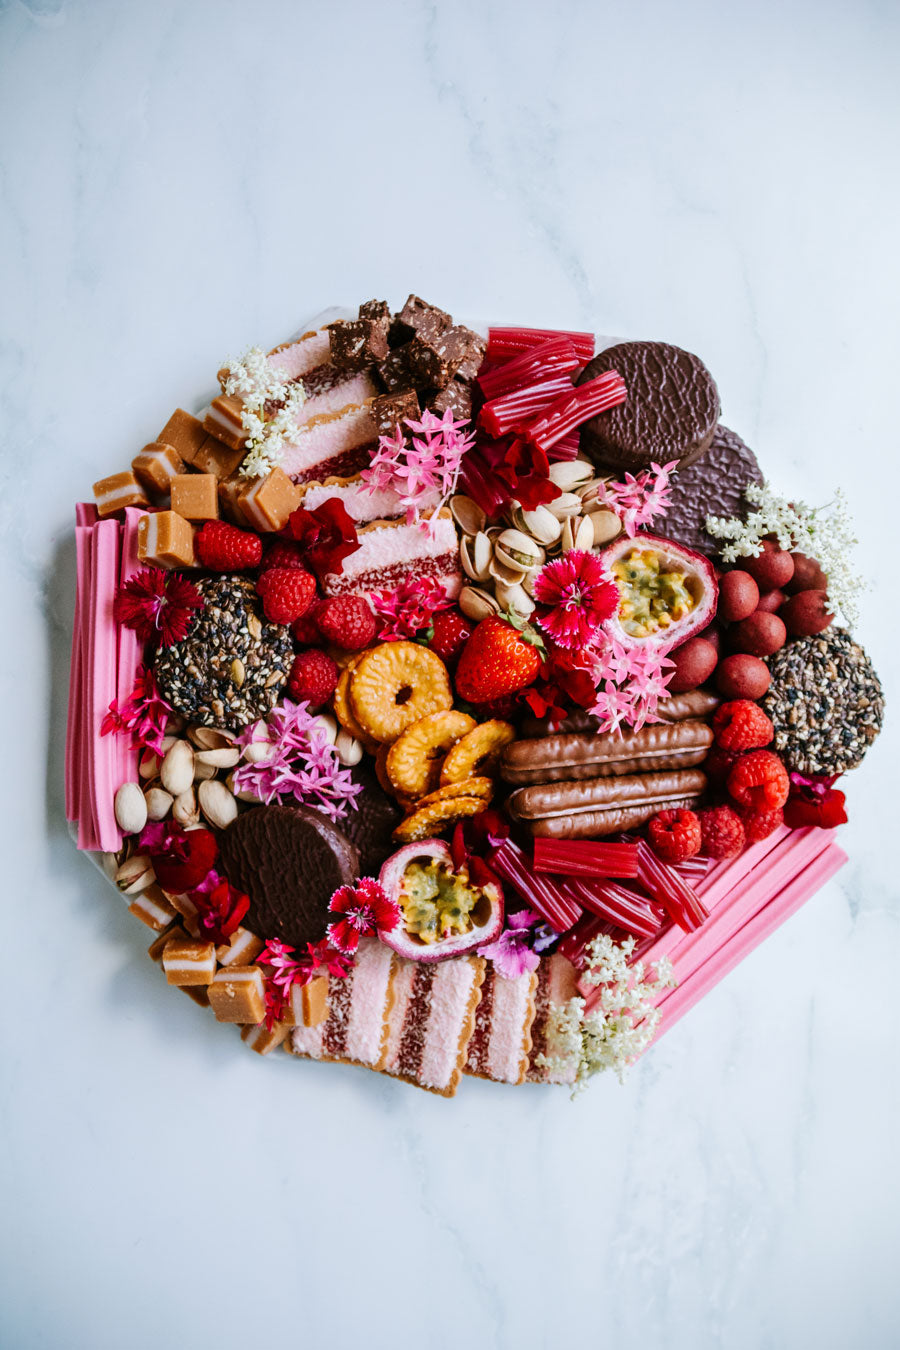 Smor-Kitchen-Naughty-But-Nice-Valentines-Day-Charcuterie-Board-Jaharn-Quinn-